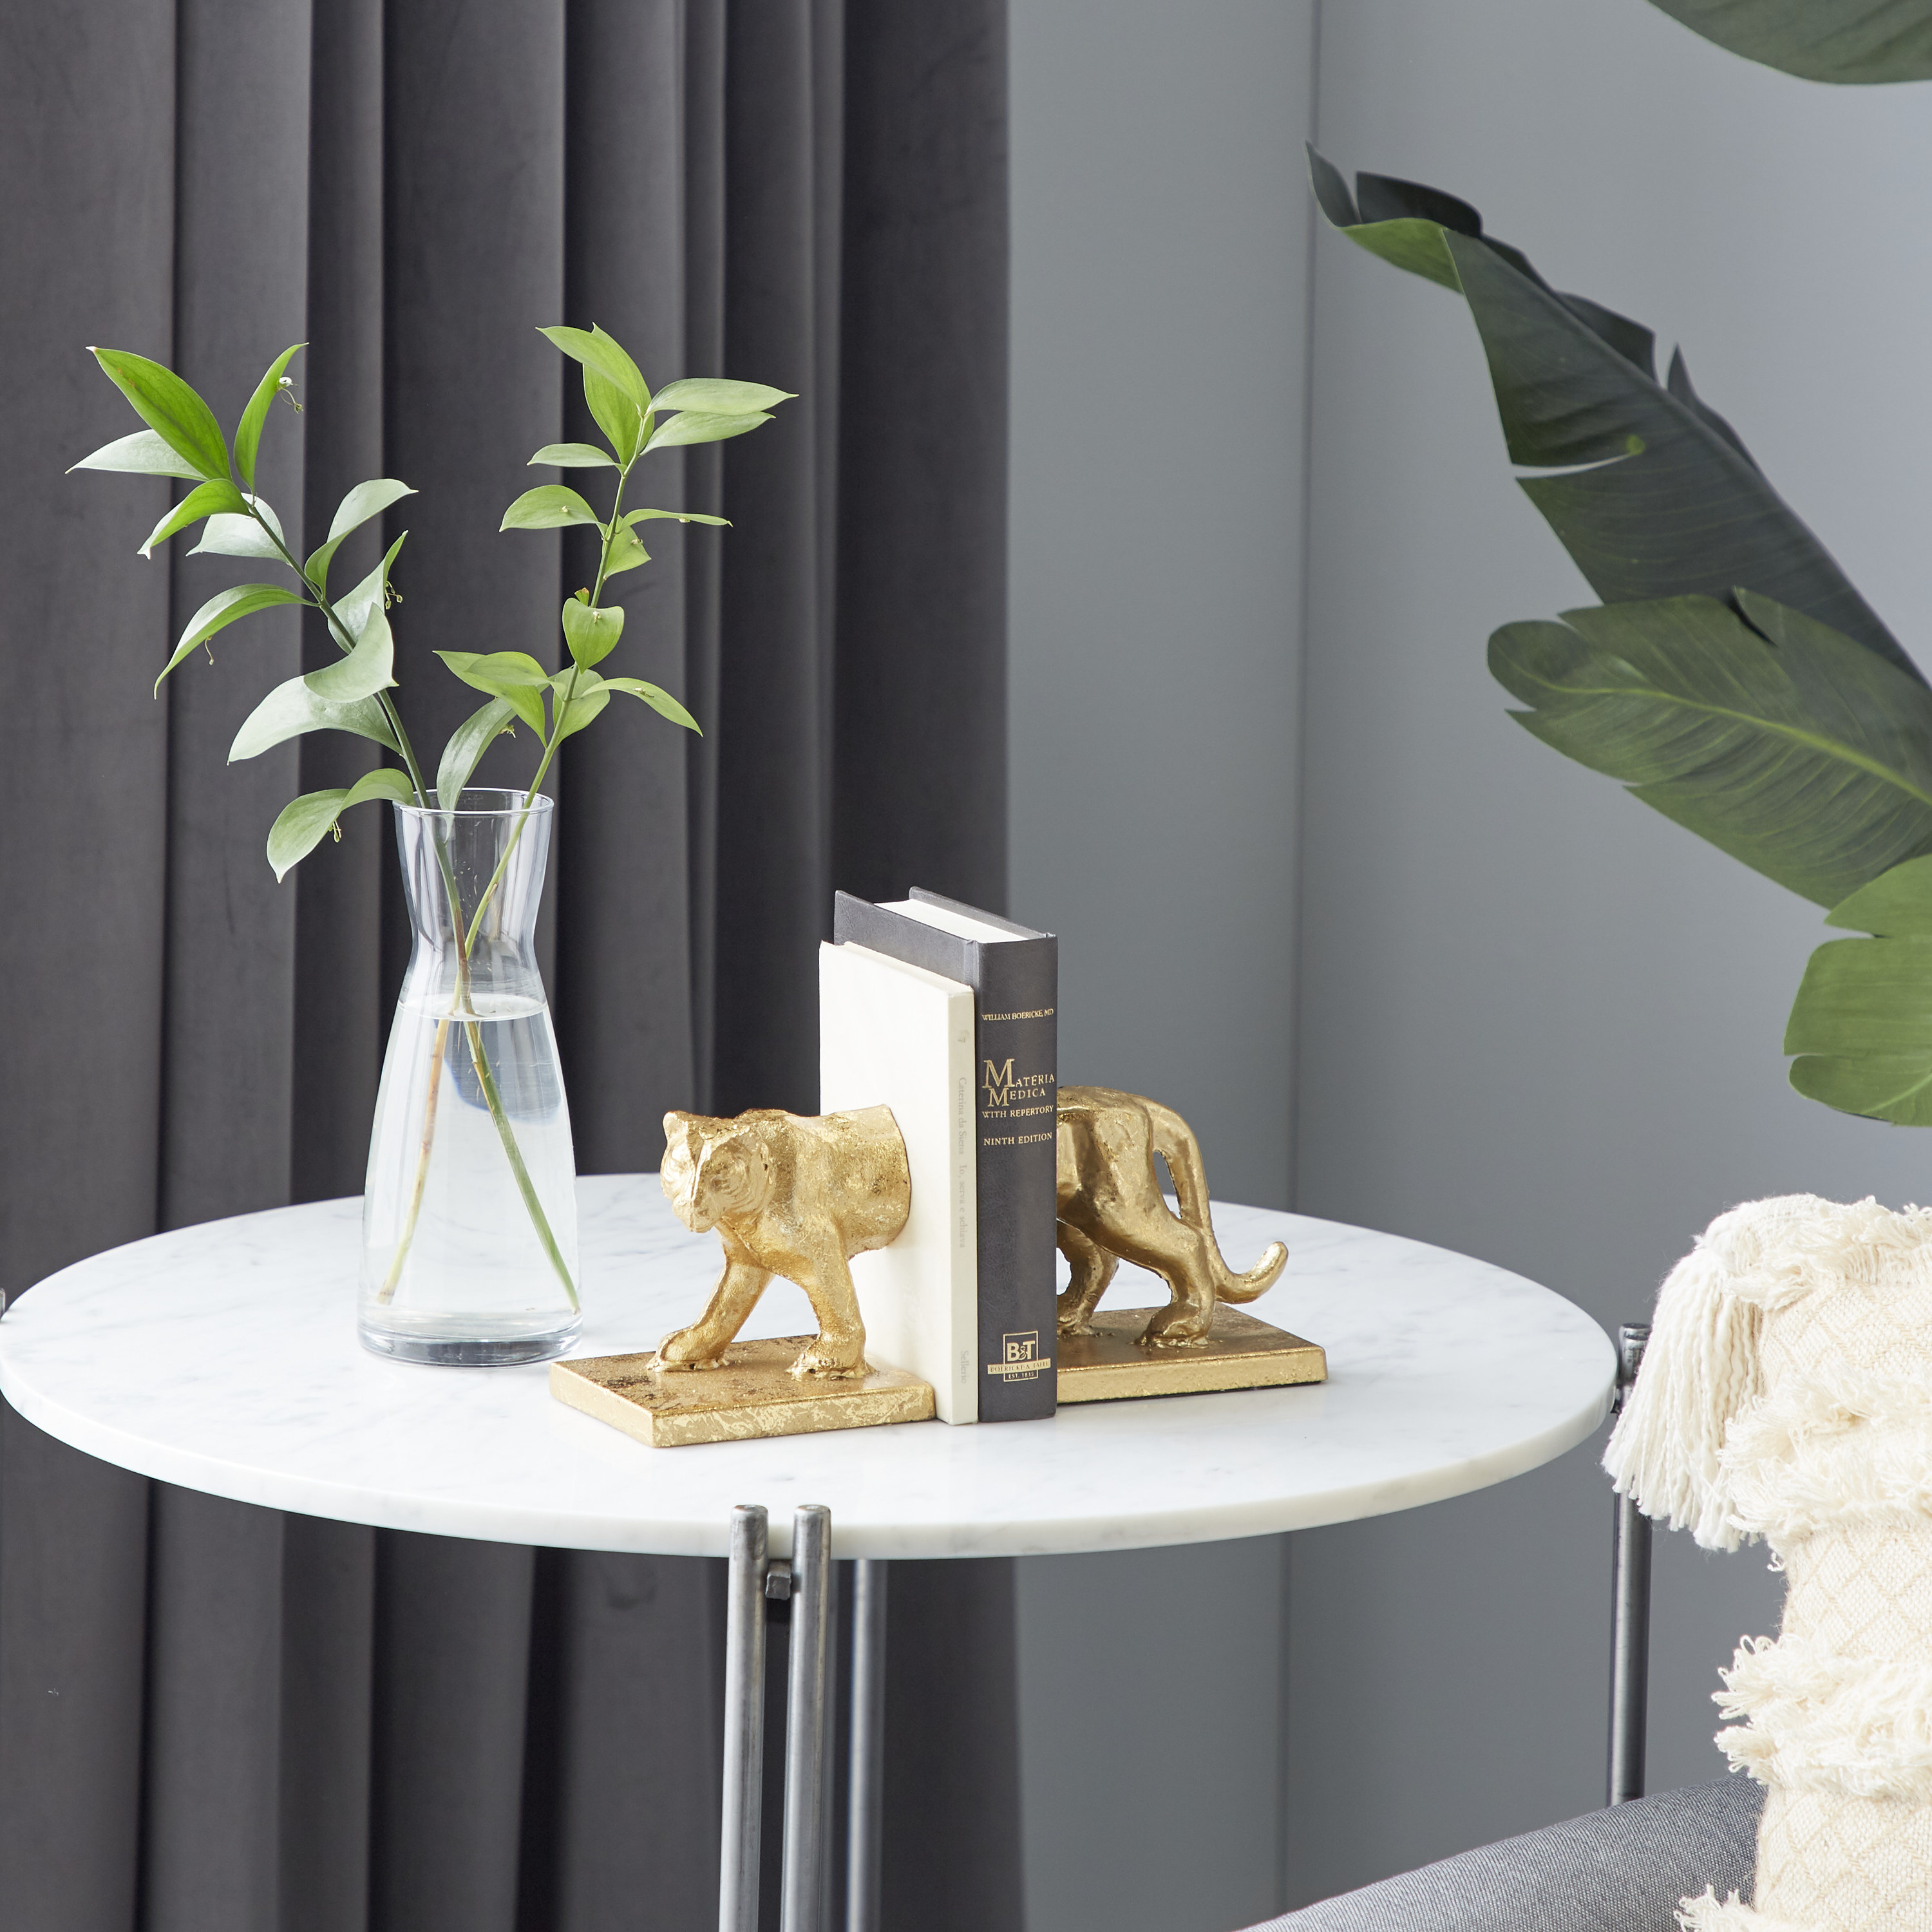 A set of gold bookends on a table